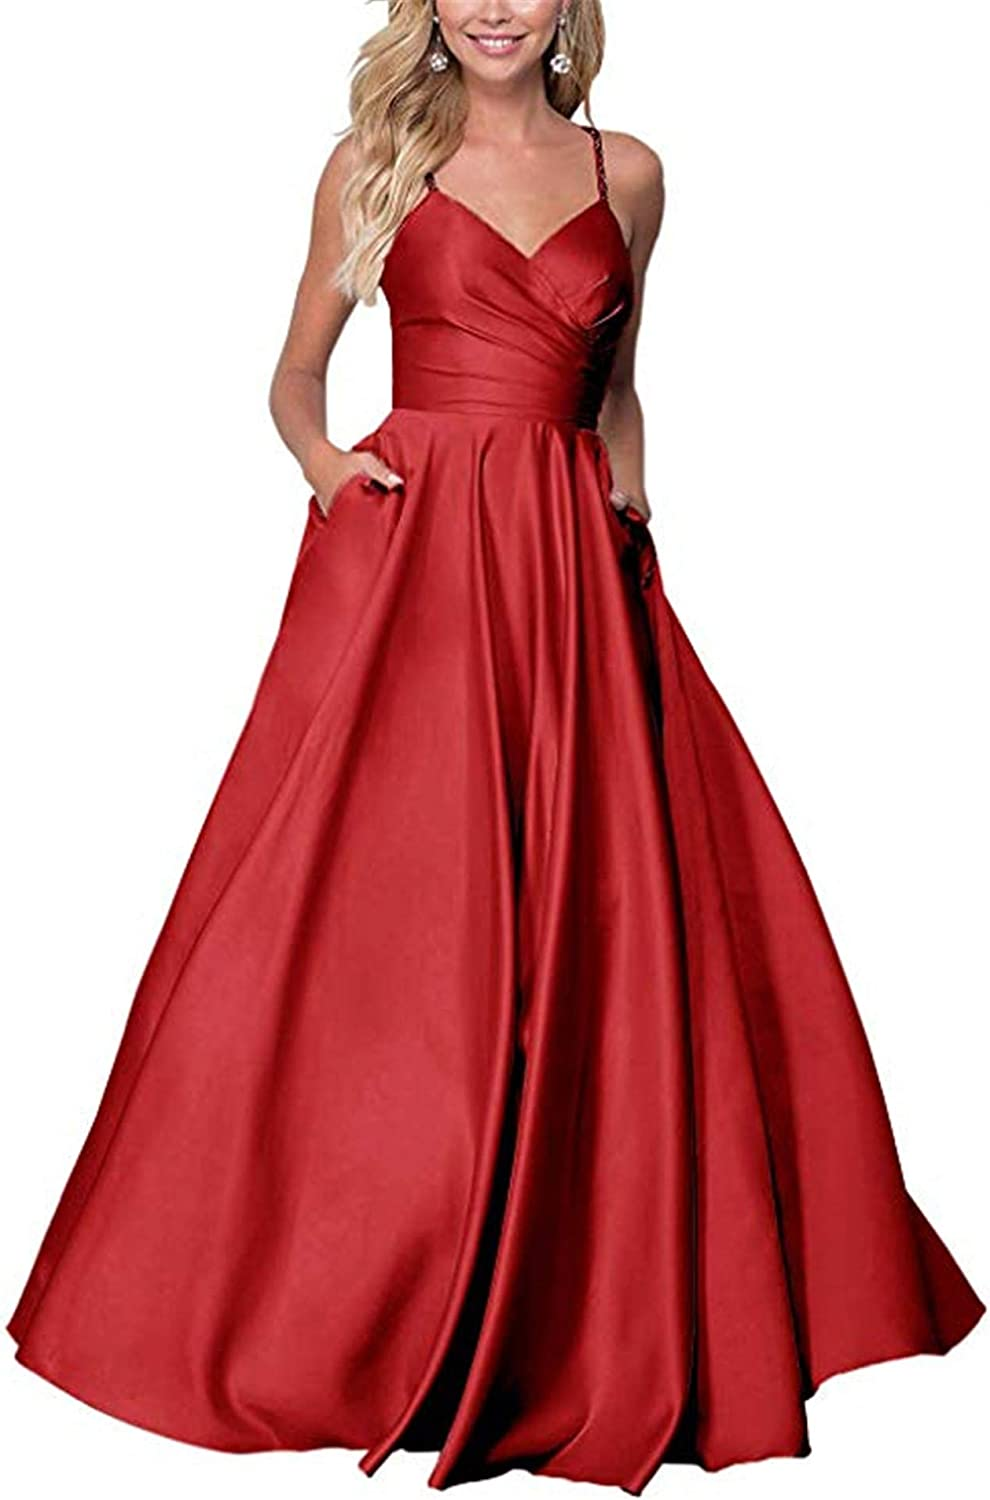 QiJunGe Women's V Neck A Line Prom Dress with Pockets Satin Spaghetti Formal Ball Gown